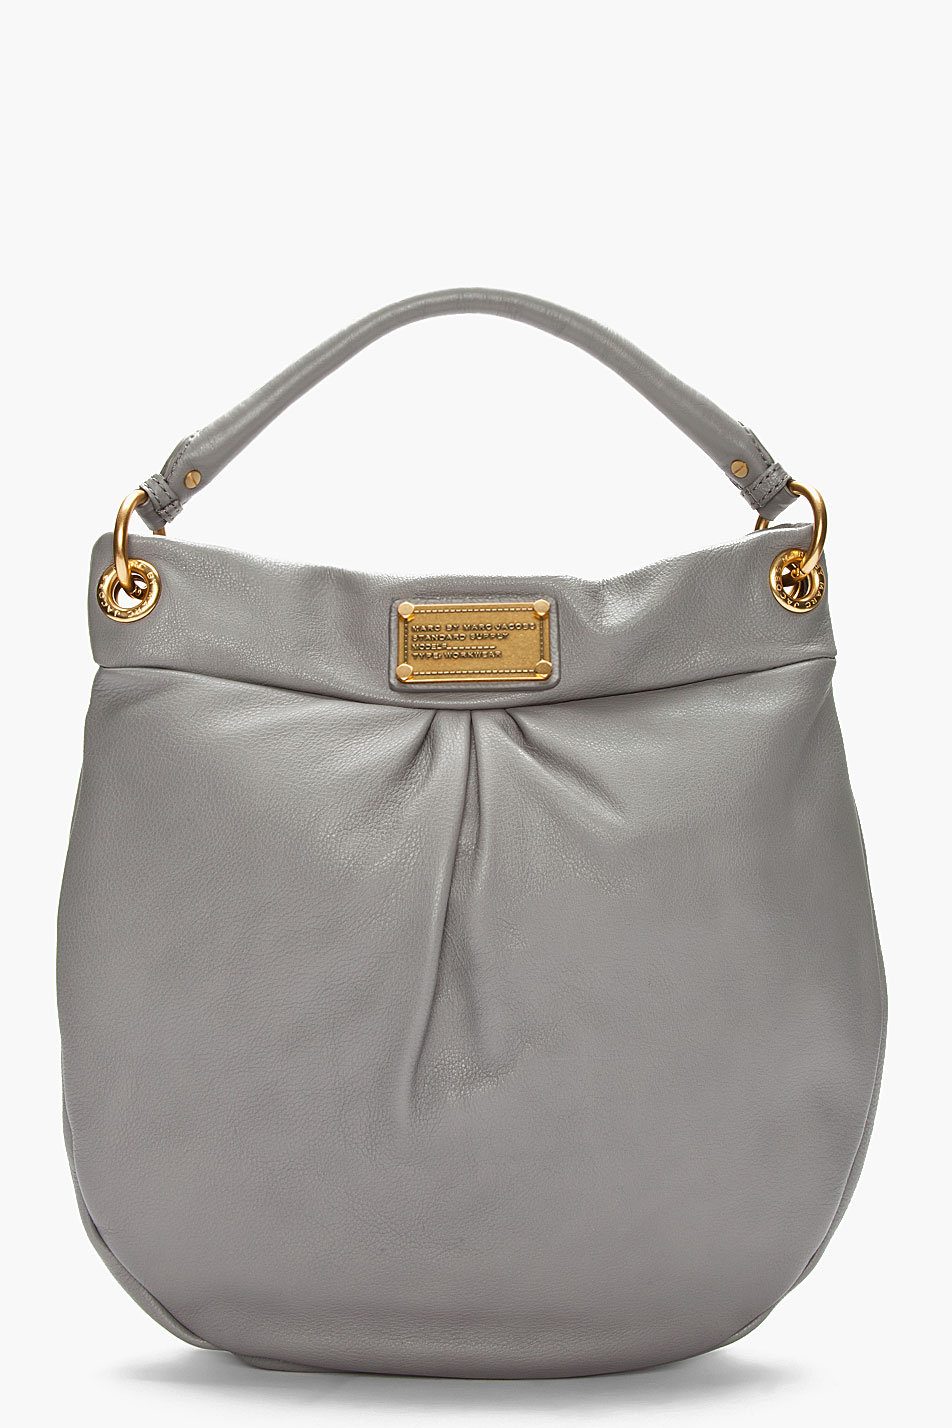 8131a643c5f Marc By Marc Jacobs Grey Leather Hillier Hobo Bag in Gray - Lyst